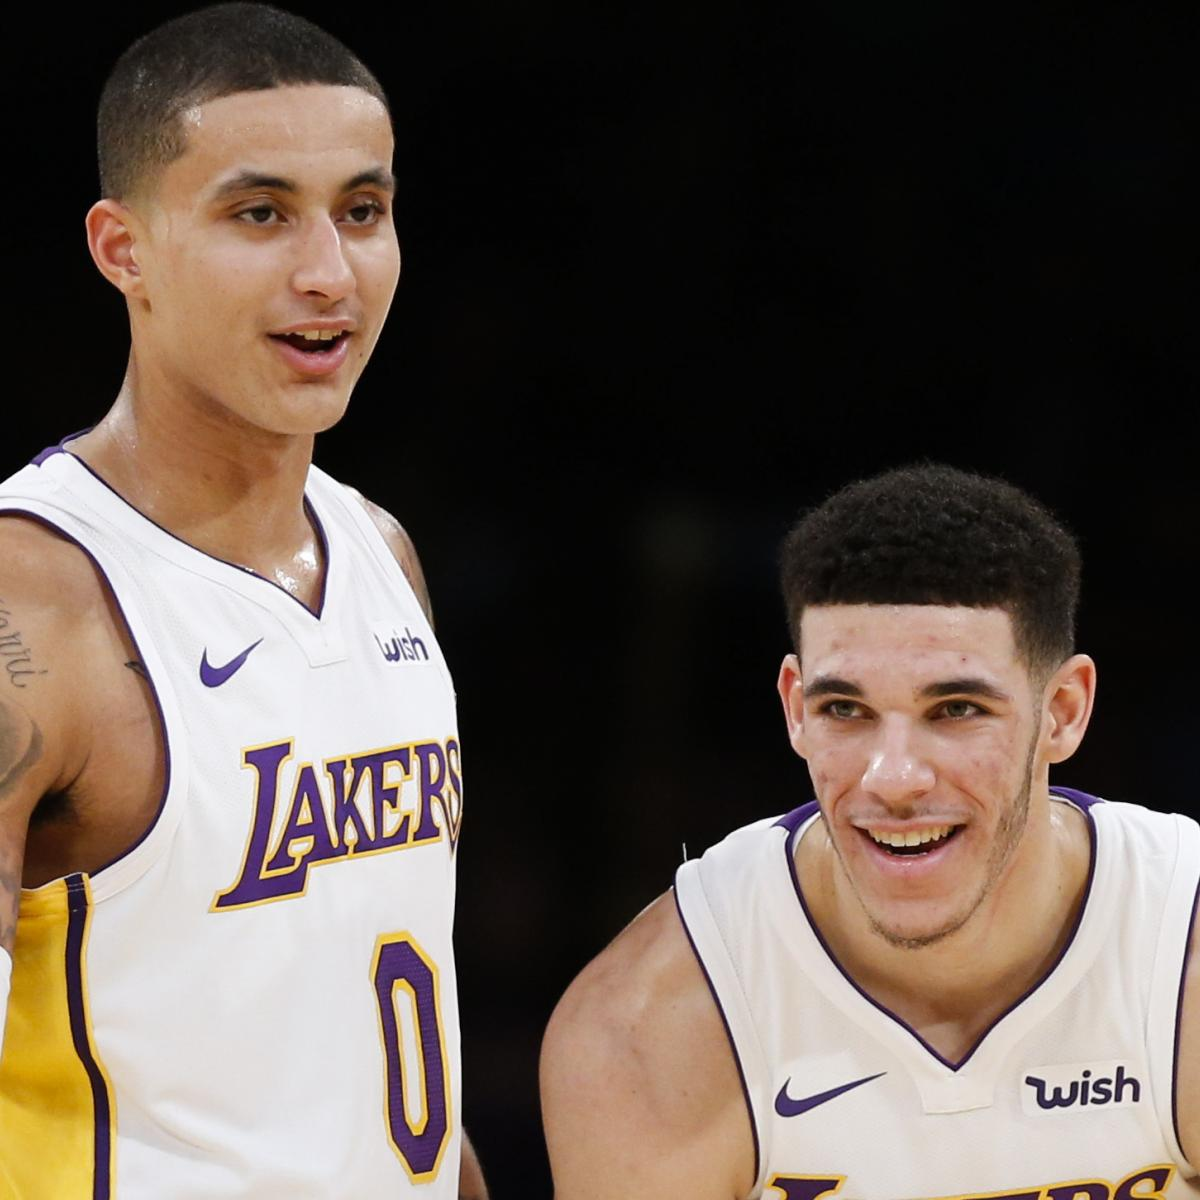 Lakers' Kyle Kuzma Impressed with Lonzo Ball After He Did 'Nothing All Summer'